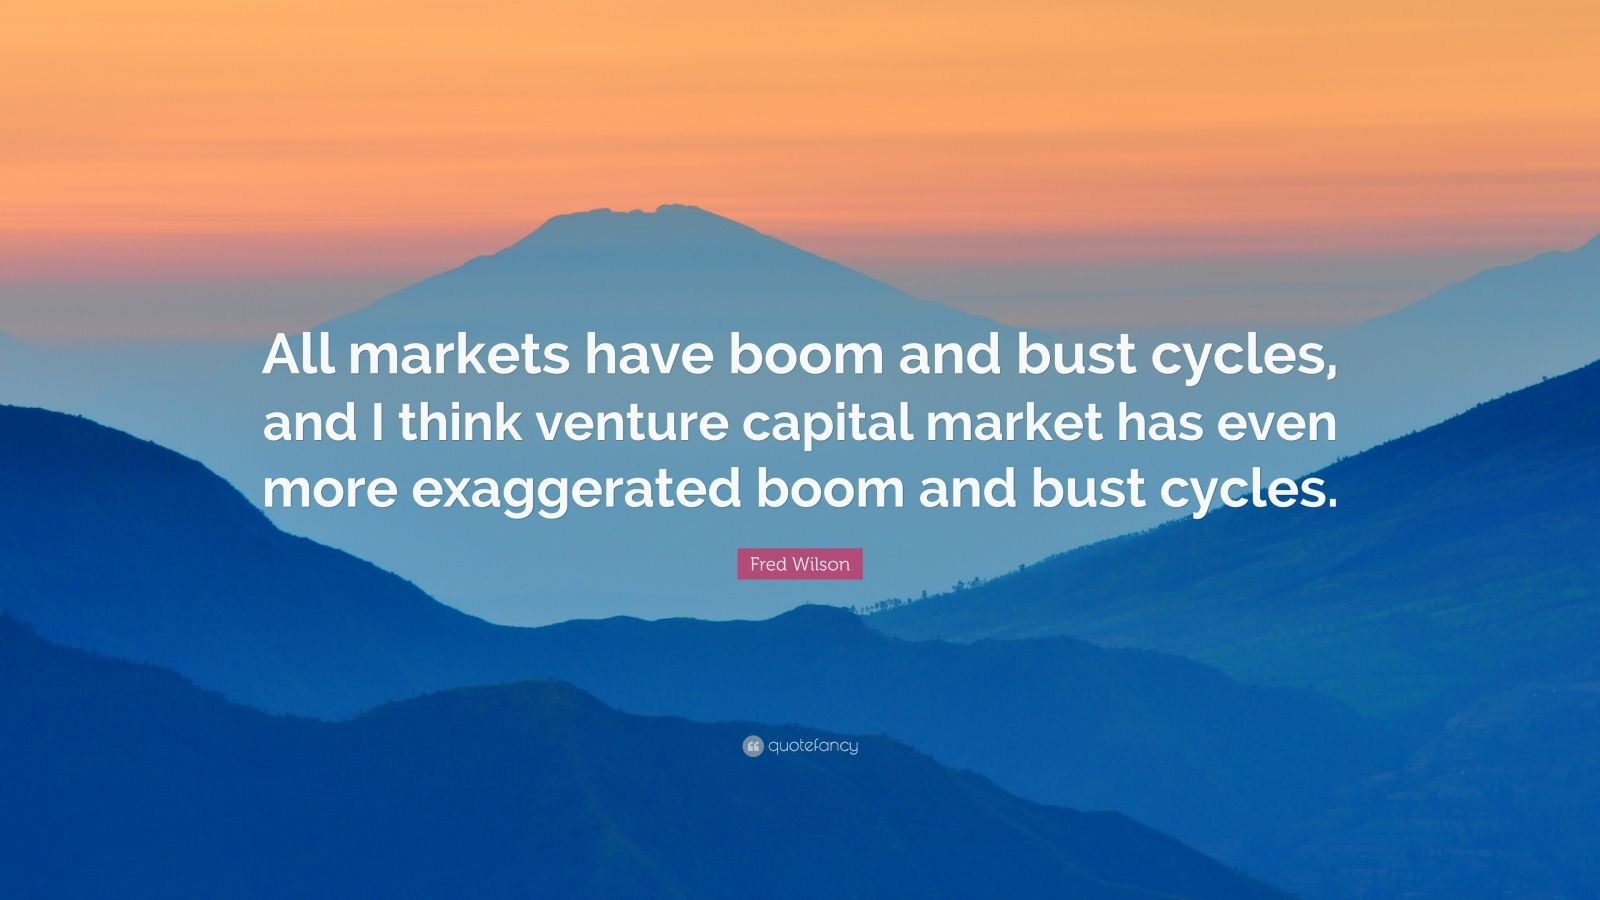 """Fred Wilson Quote: """"All markets have boom and bust cycles, and I think venture capital market has even more exaggerated boom and bust cycles."""""""